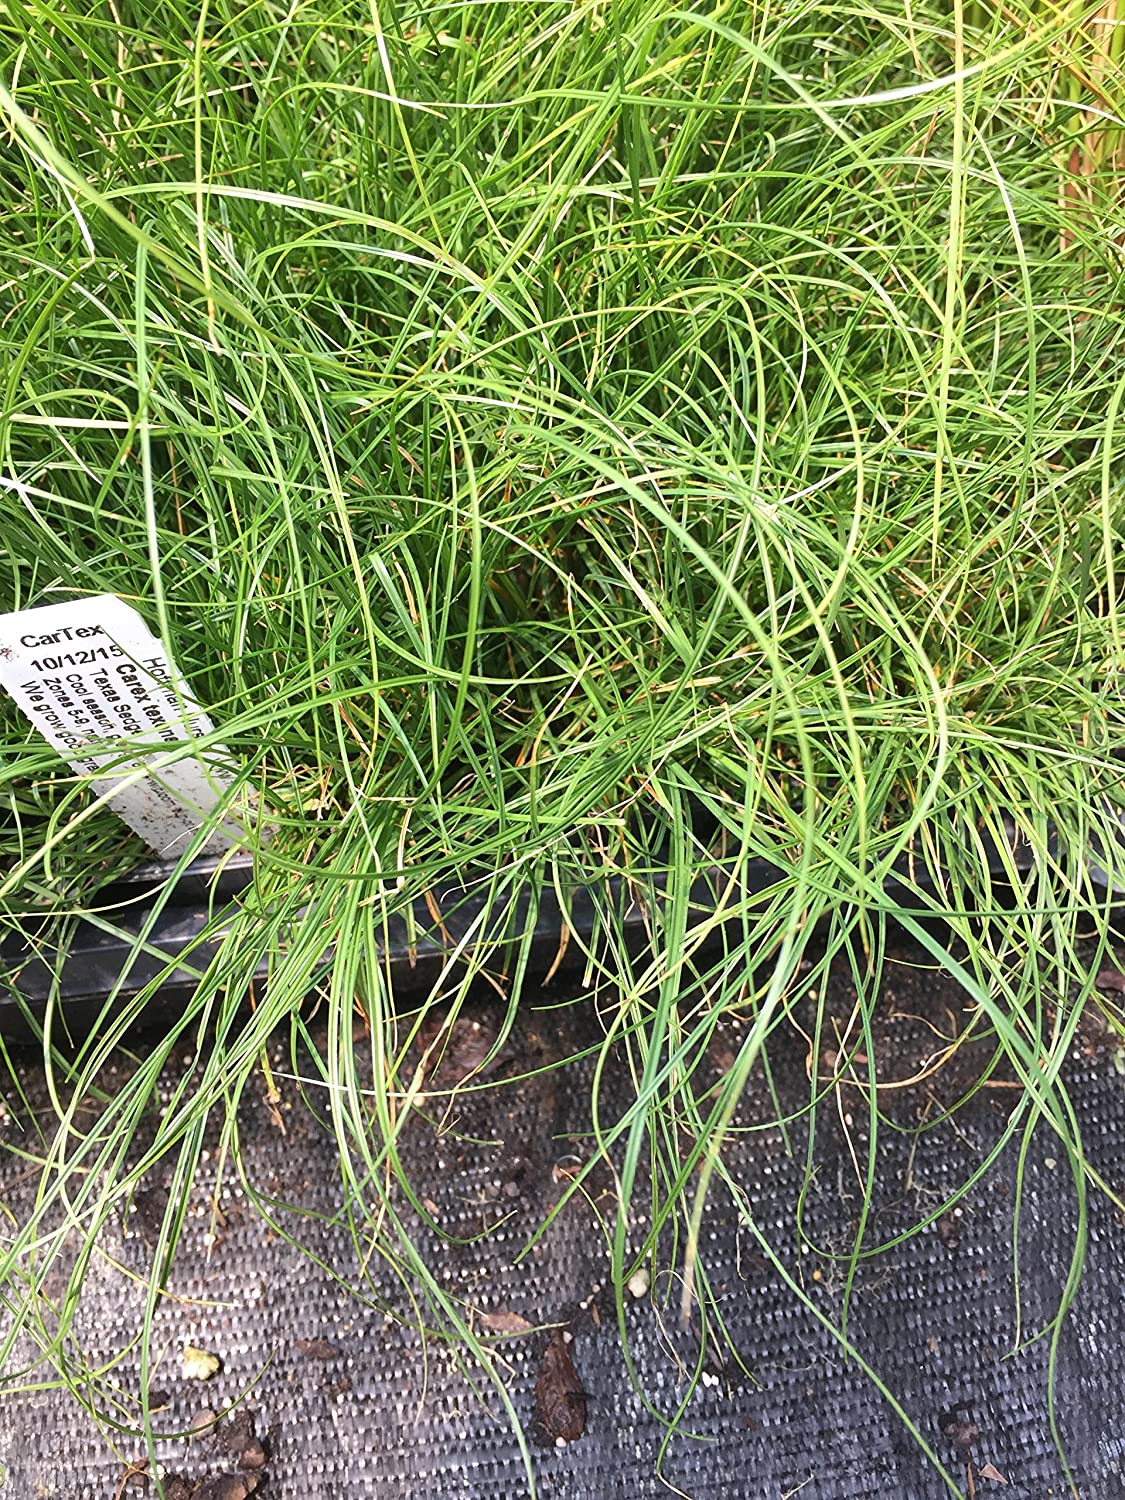 Amazon Com Carex Texensis Grass Plants 3 Containers In 2 5 Inch